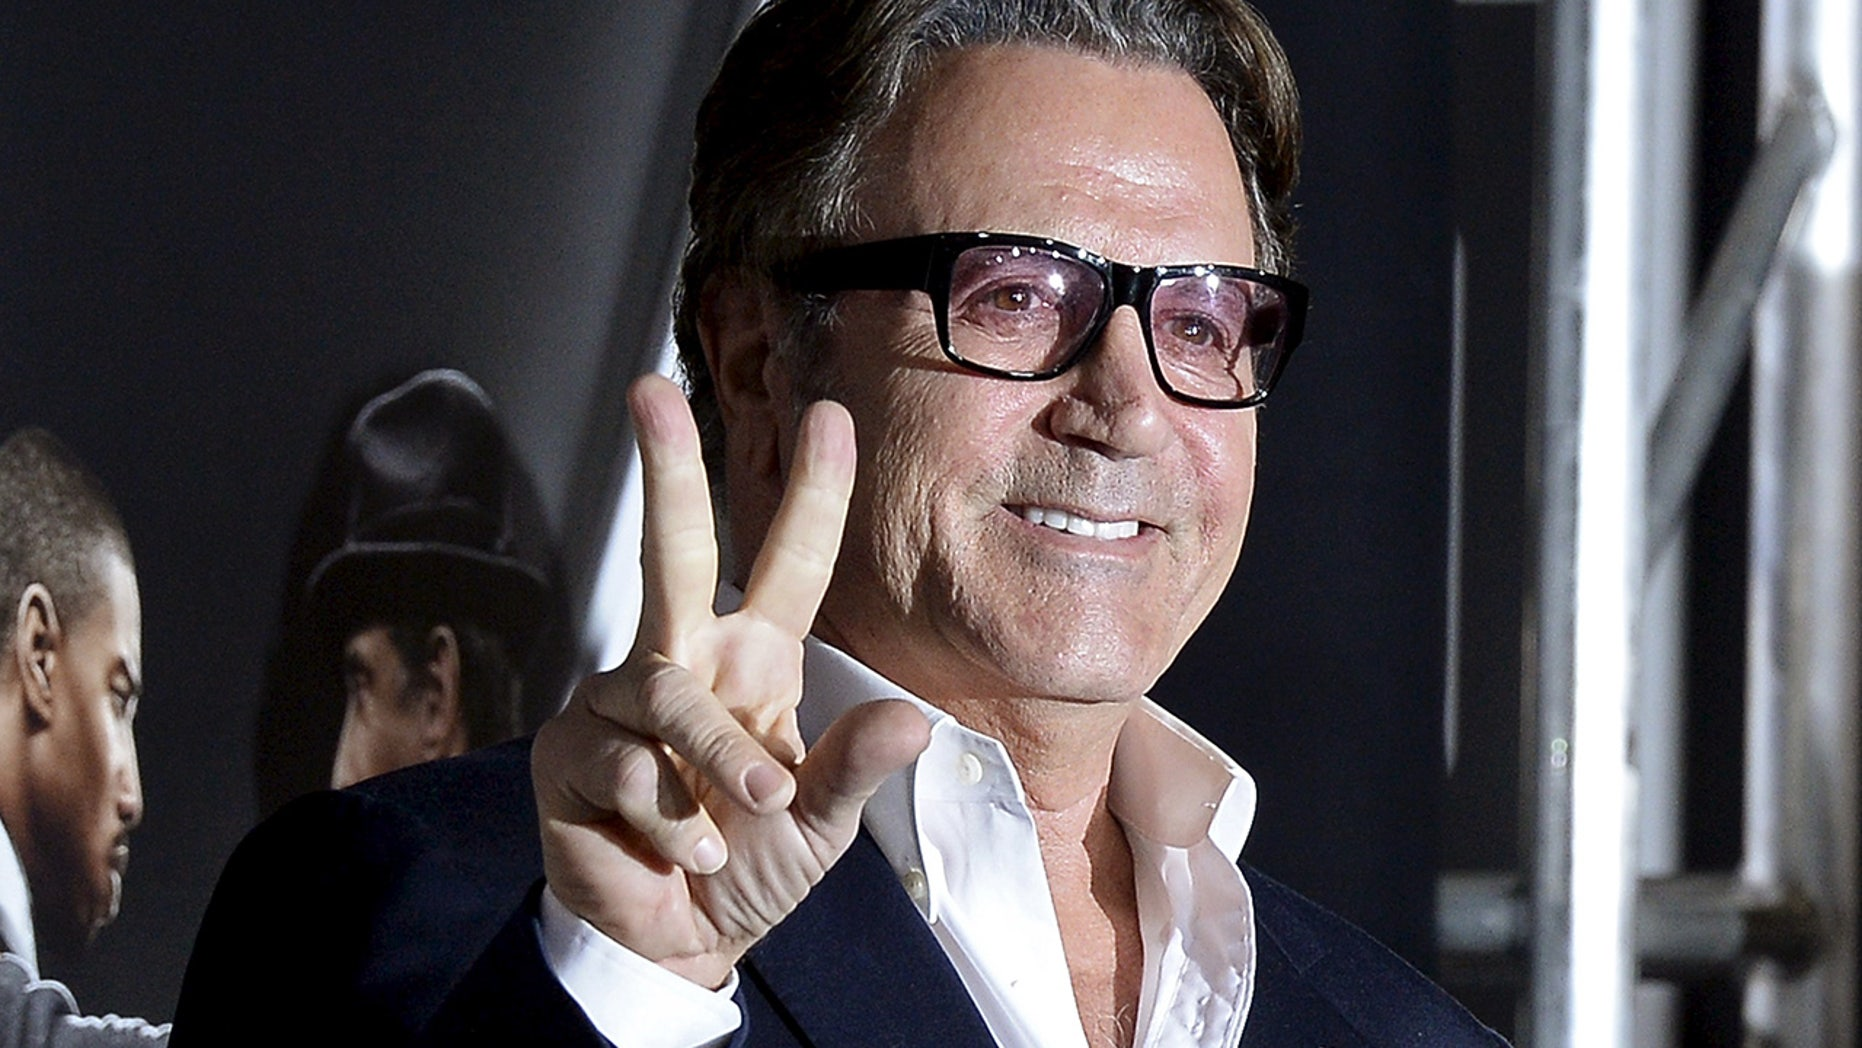 Frank Stallone apologized for his profanity-laded tweet toward David Hogg.